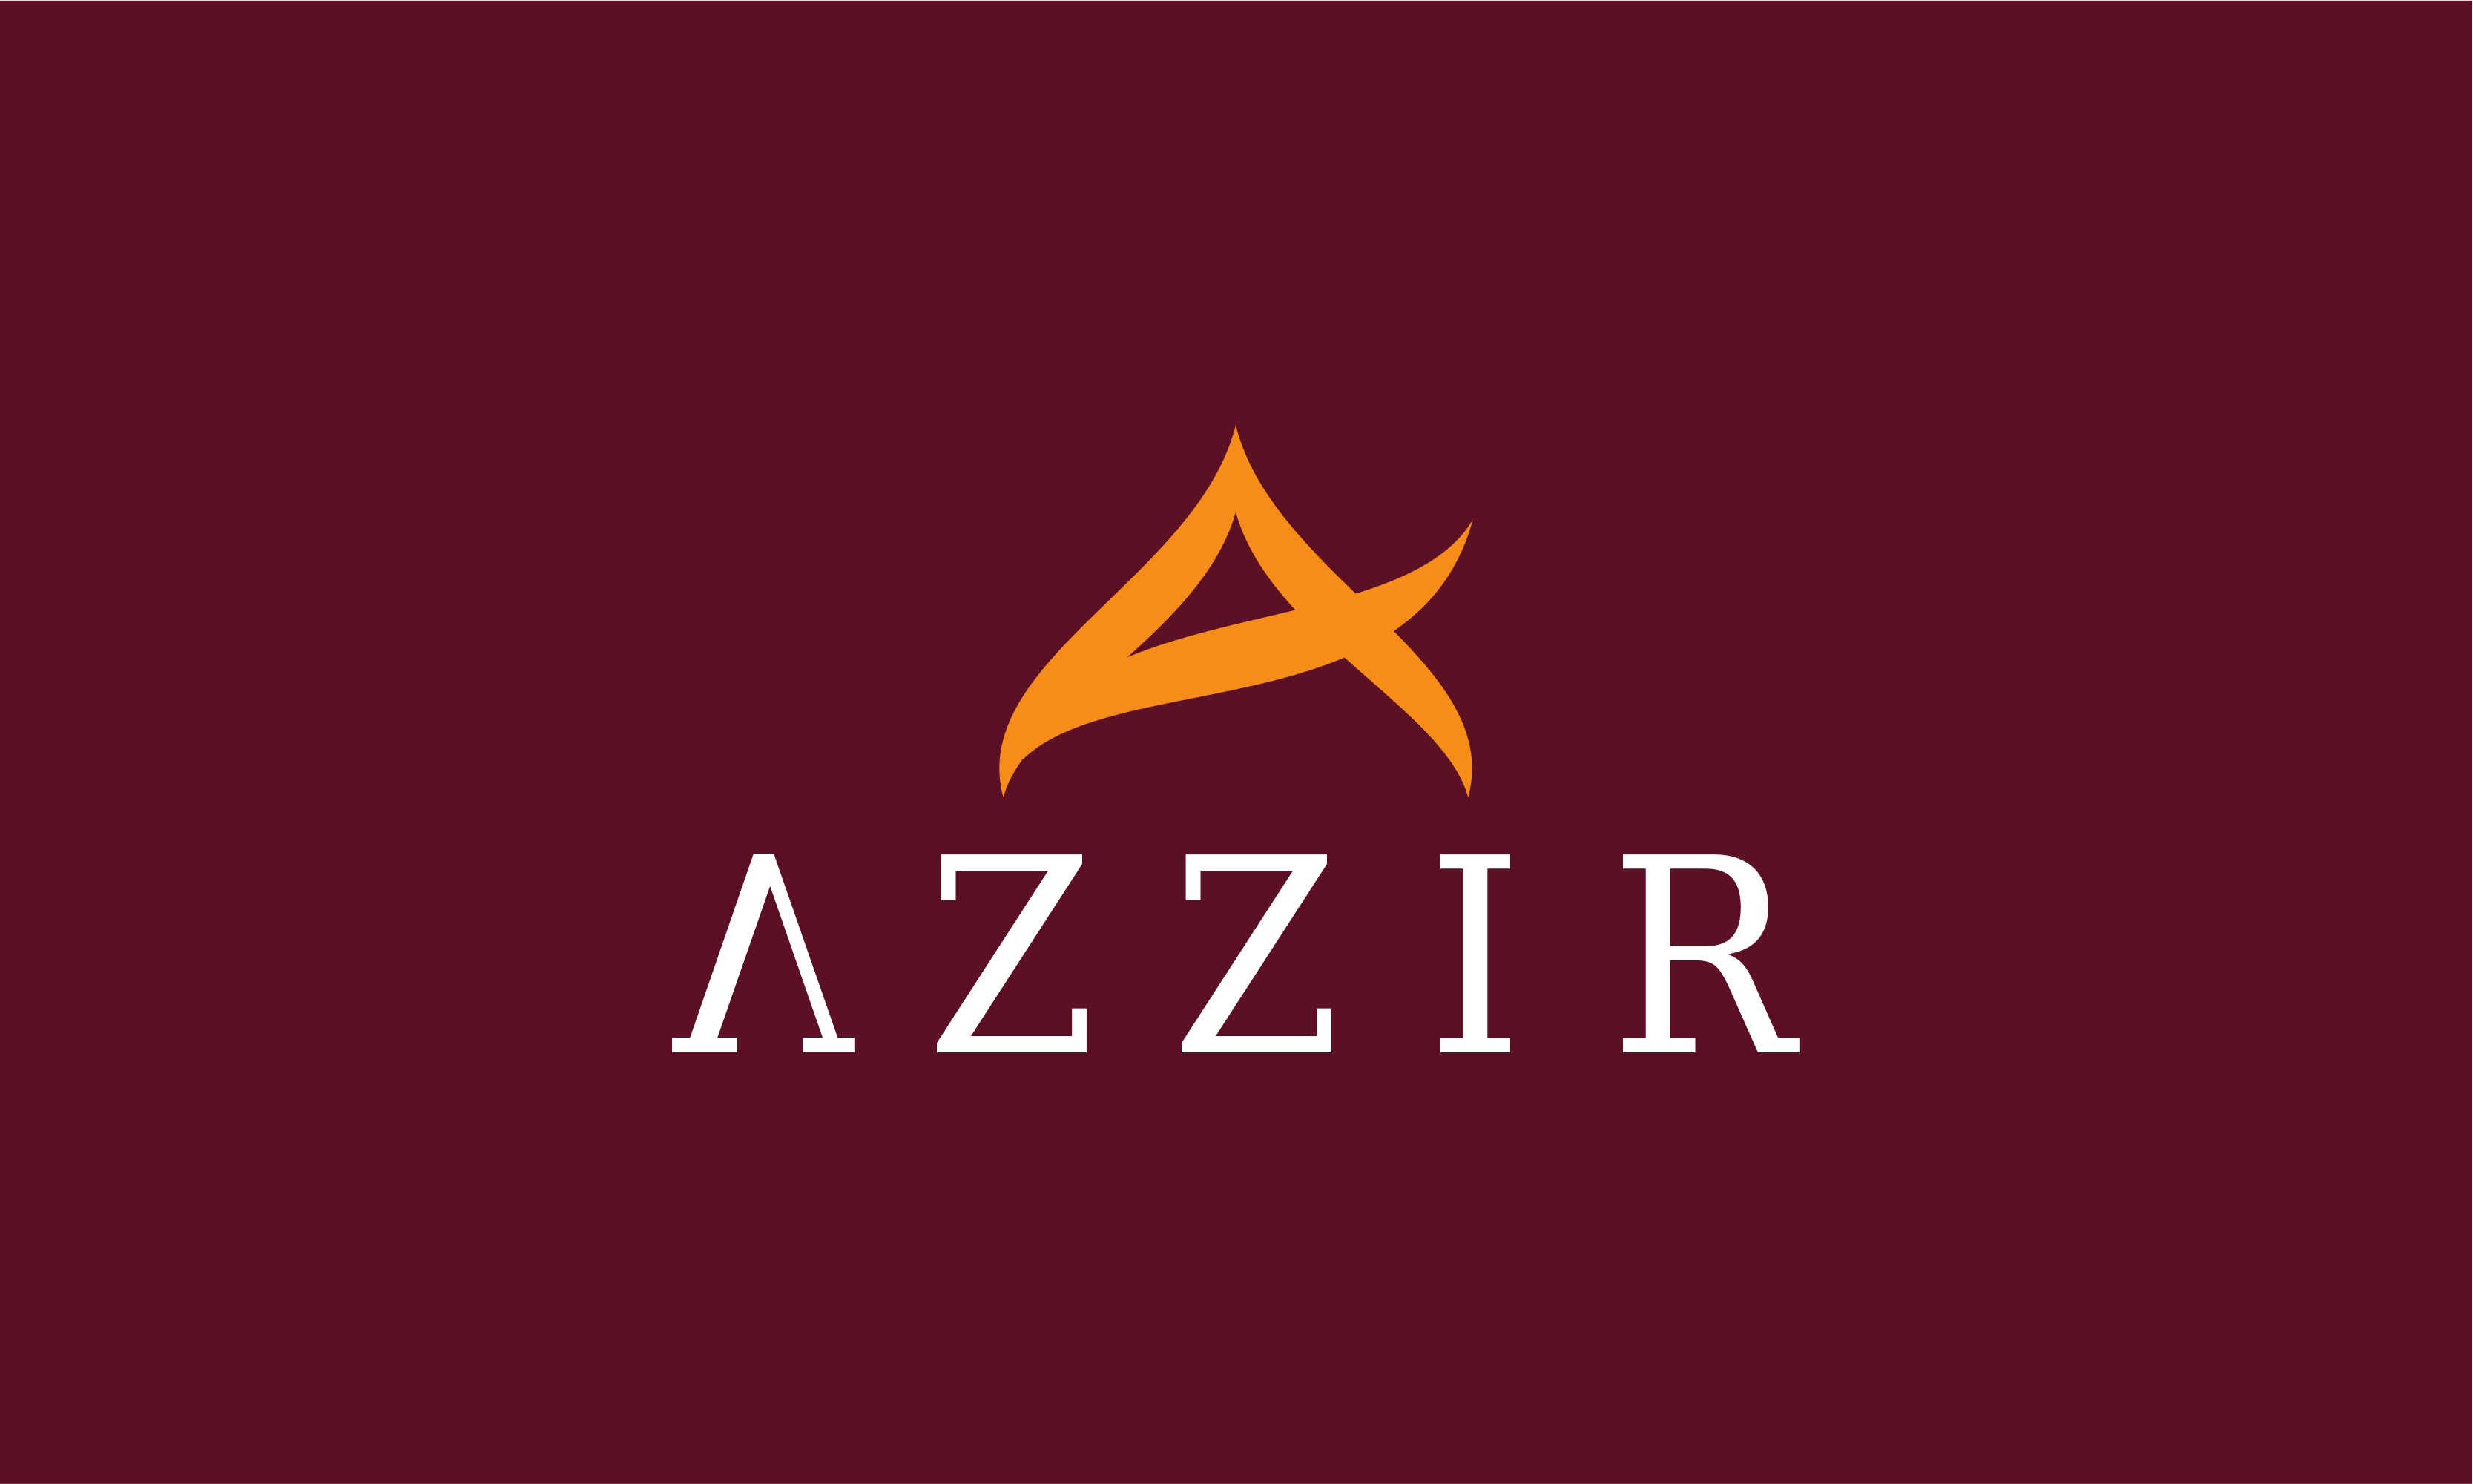 Azzir - Modern product name for sale